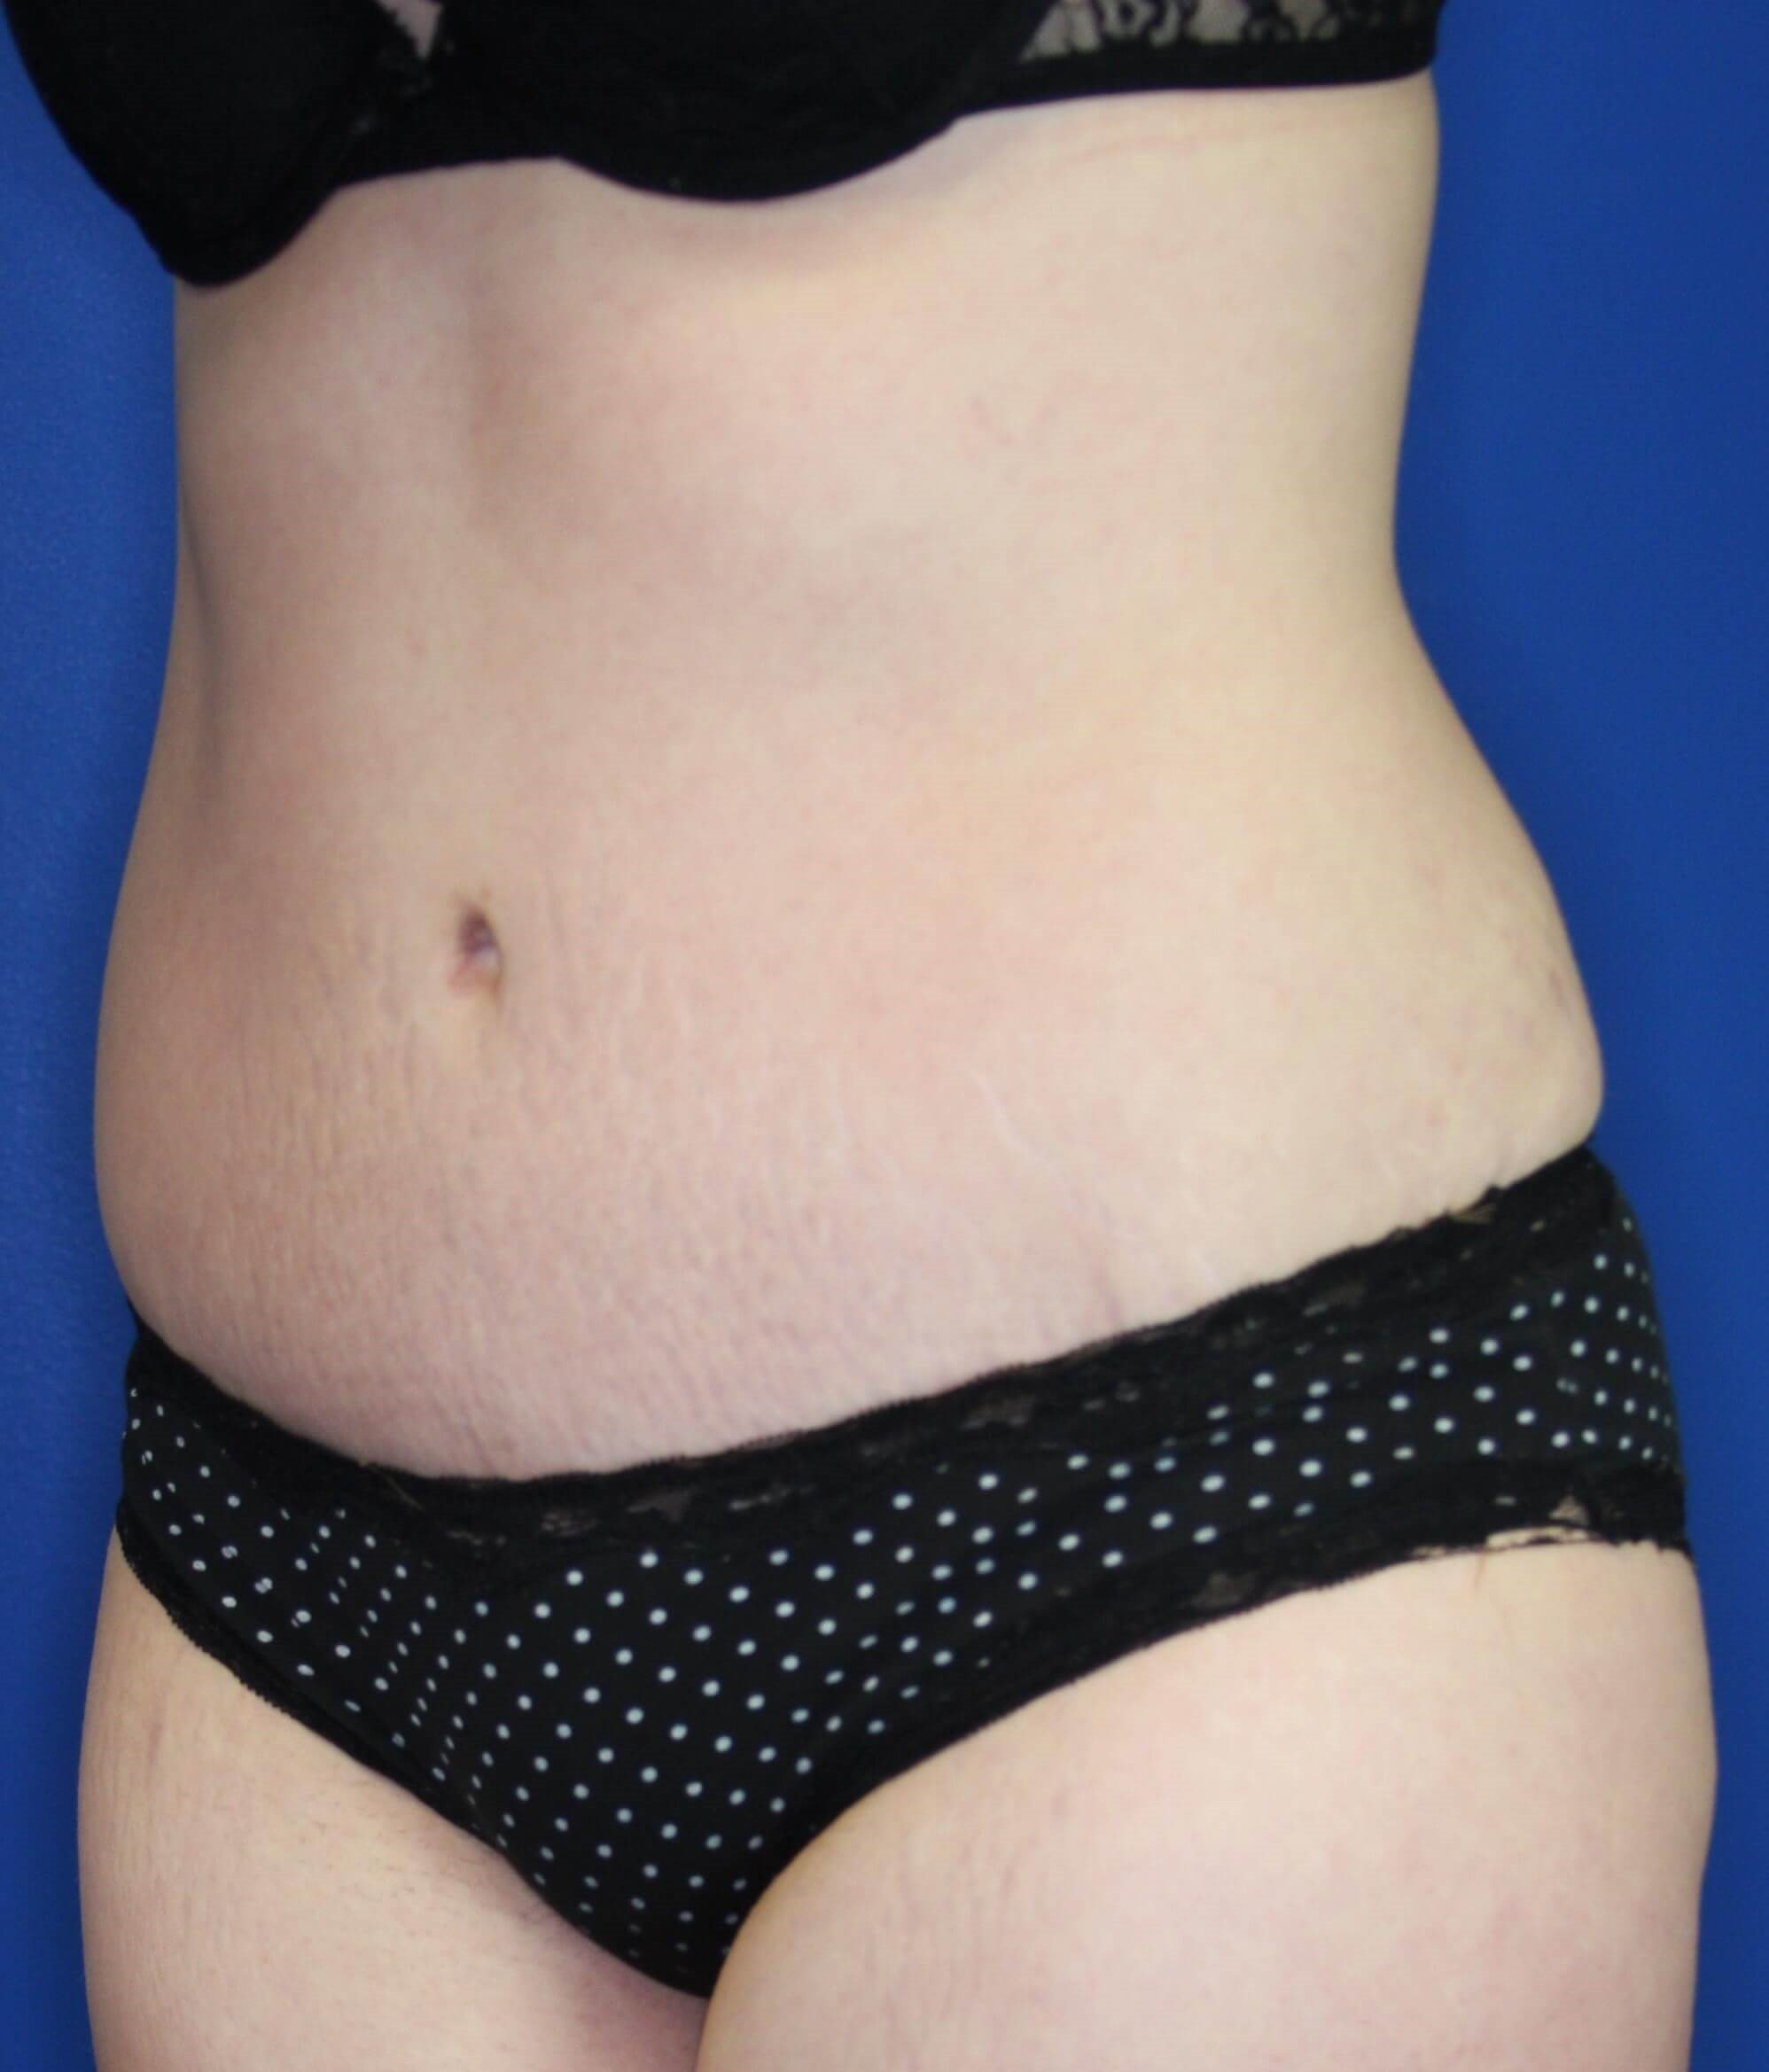 Tummy Tuck in Downers Grove,IL 5 months after